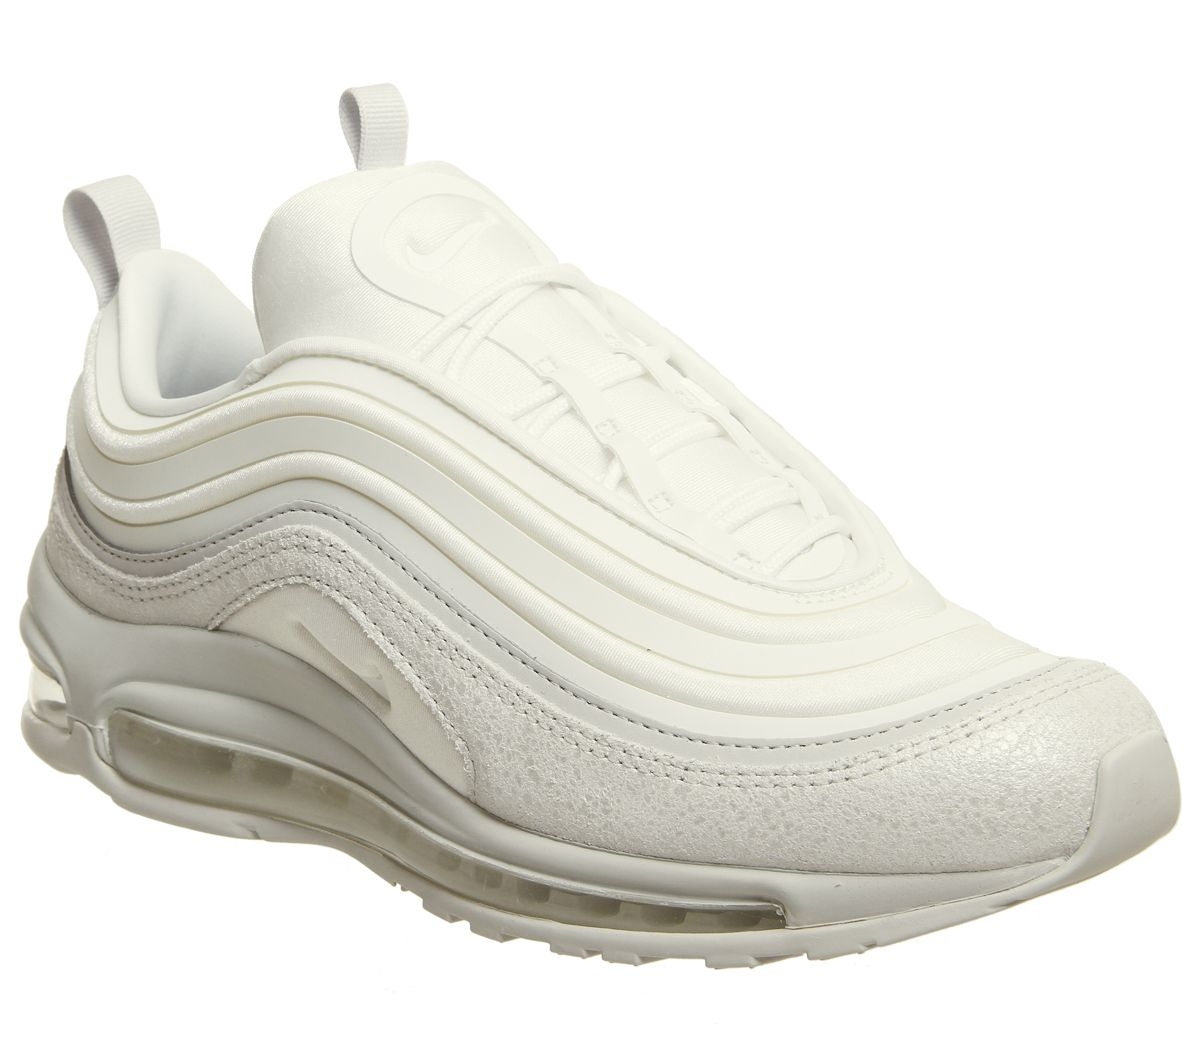 separation shoes df206 25652 Nike Air Max 97 Ul Summit White Light Bone - Hers trainers